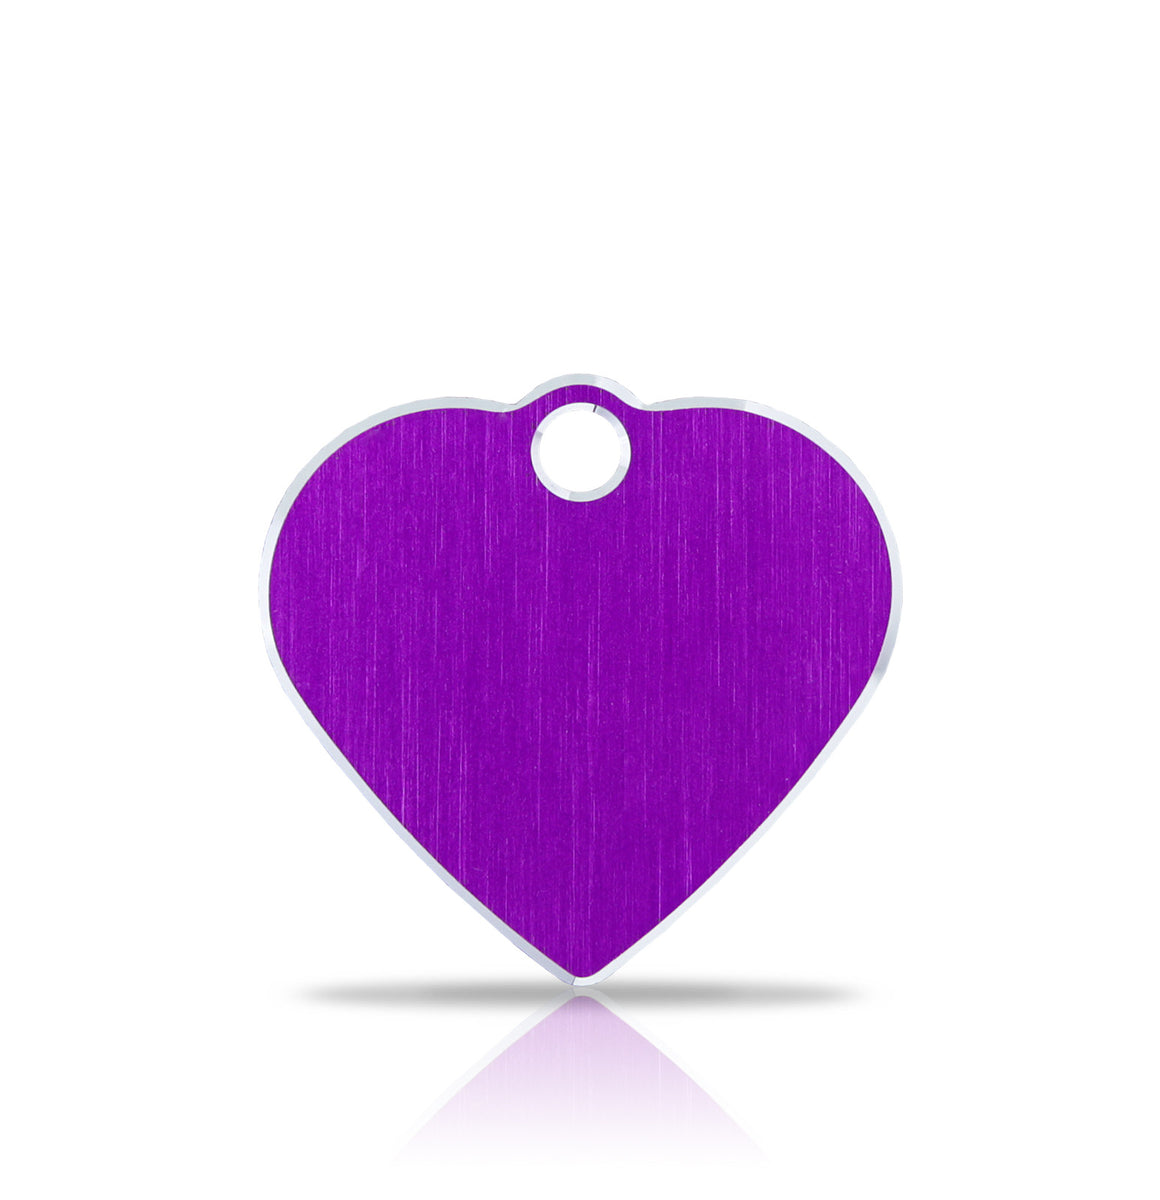 TaggIT Hi-Line Aluminium Purple Small Heart iMarc Pet ID Tag